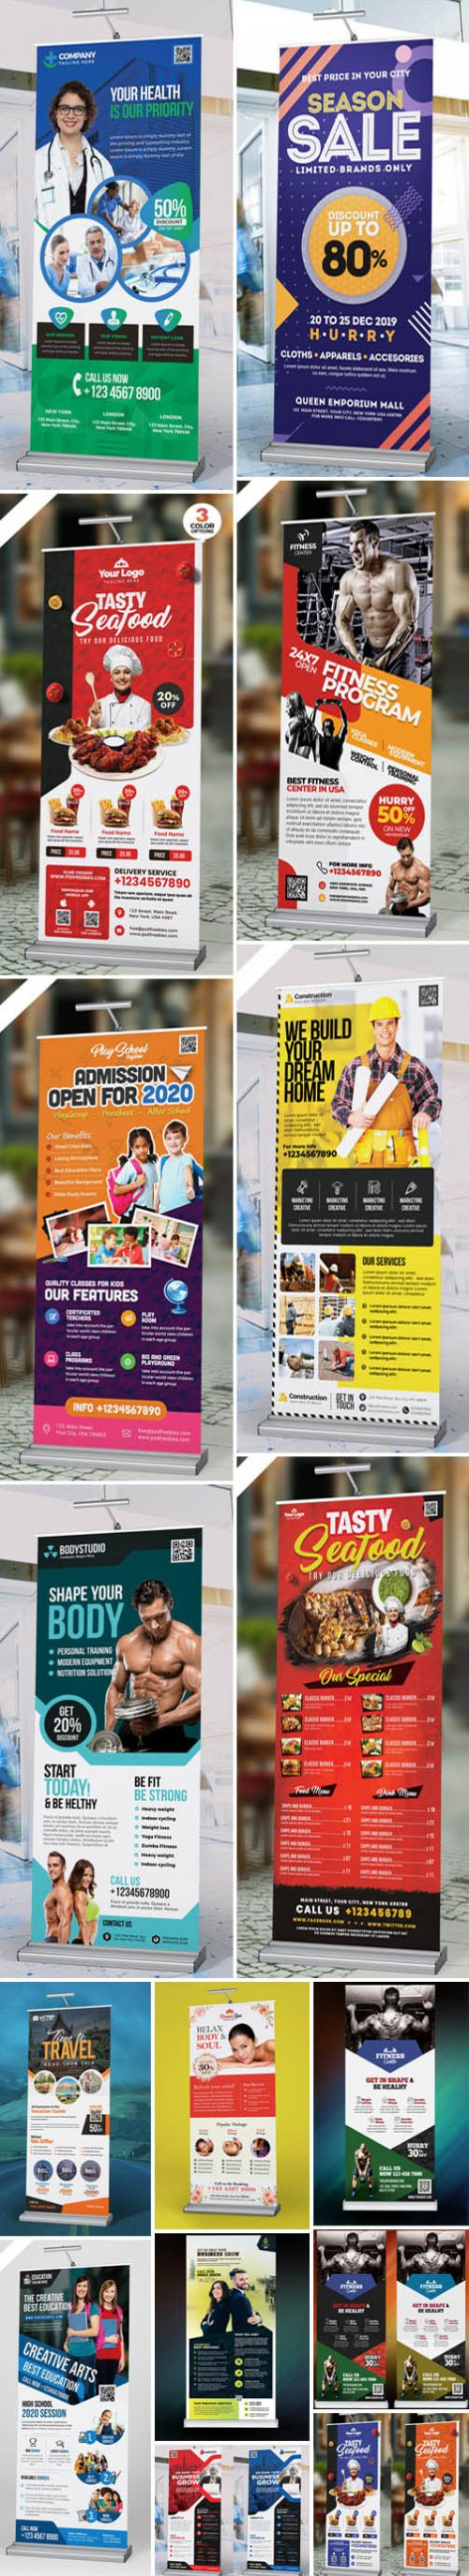 Multipurpose Advertising Roll-Up Banners PSD Collection